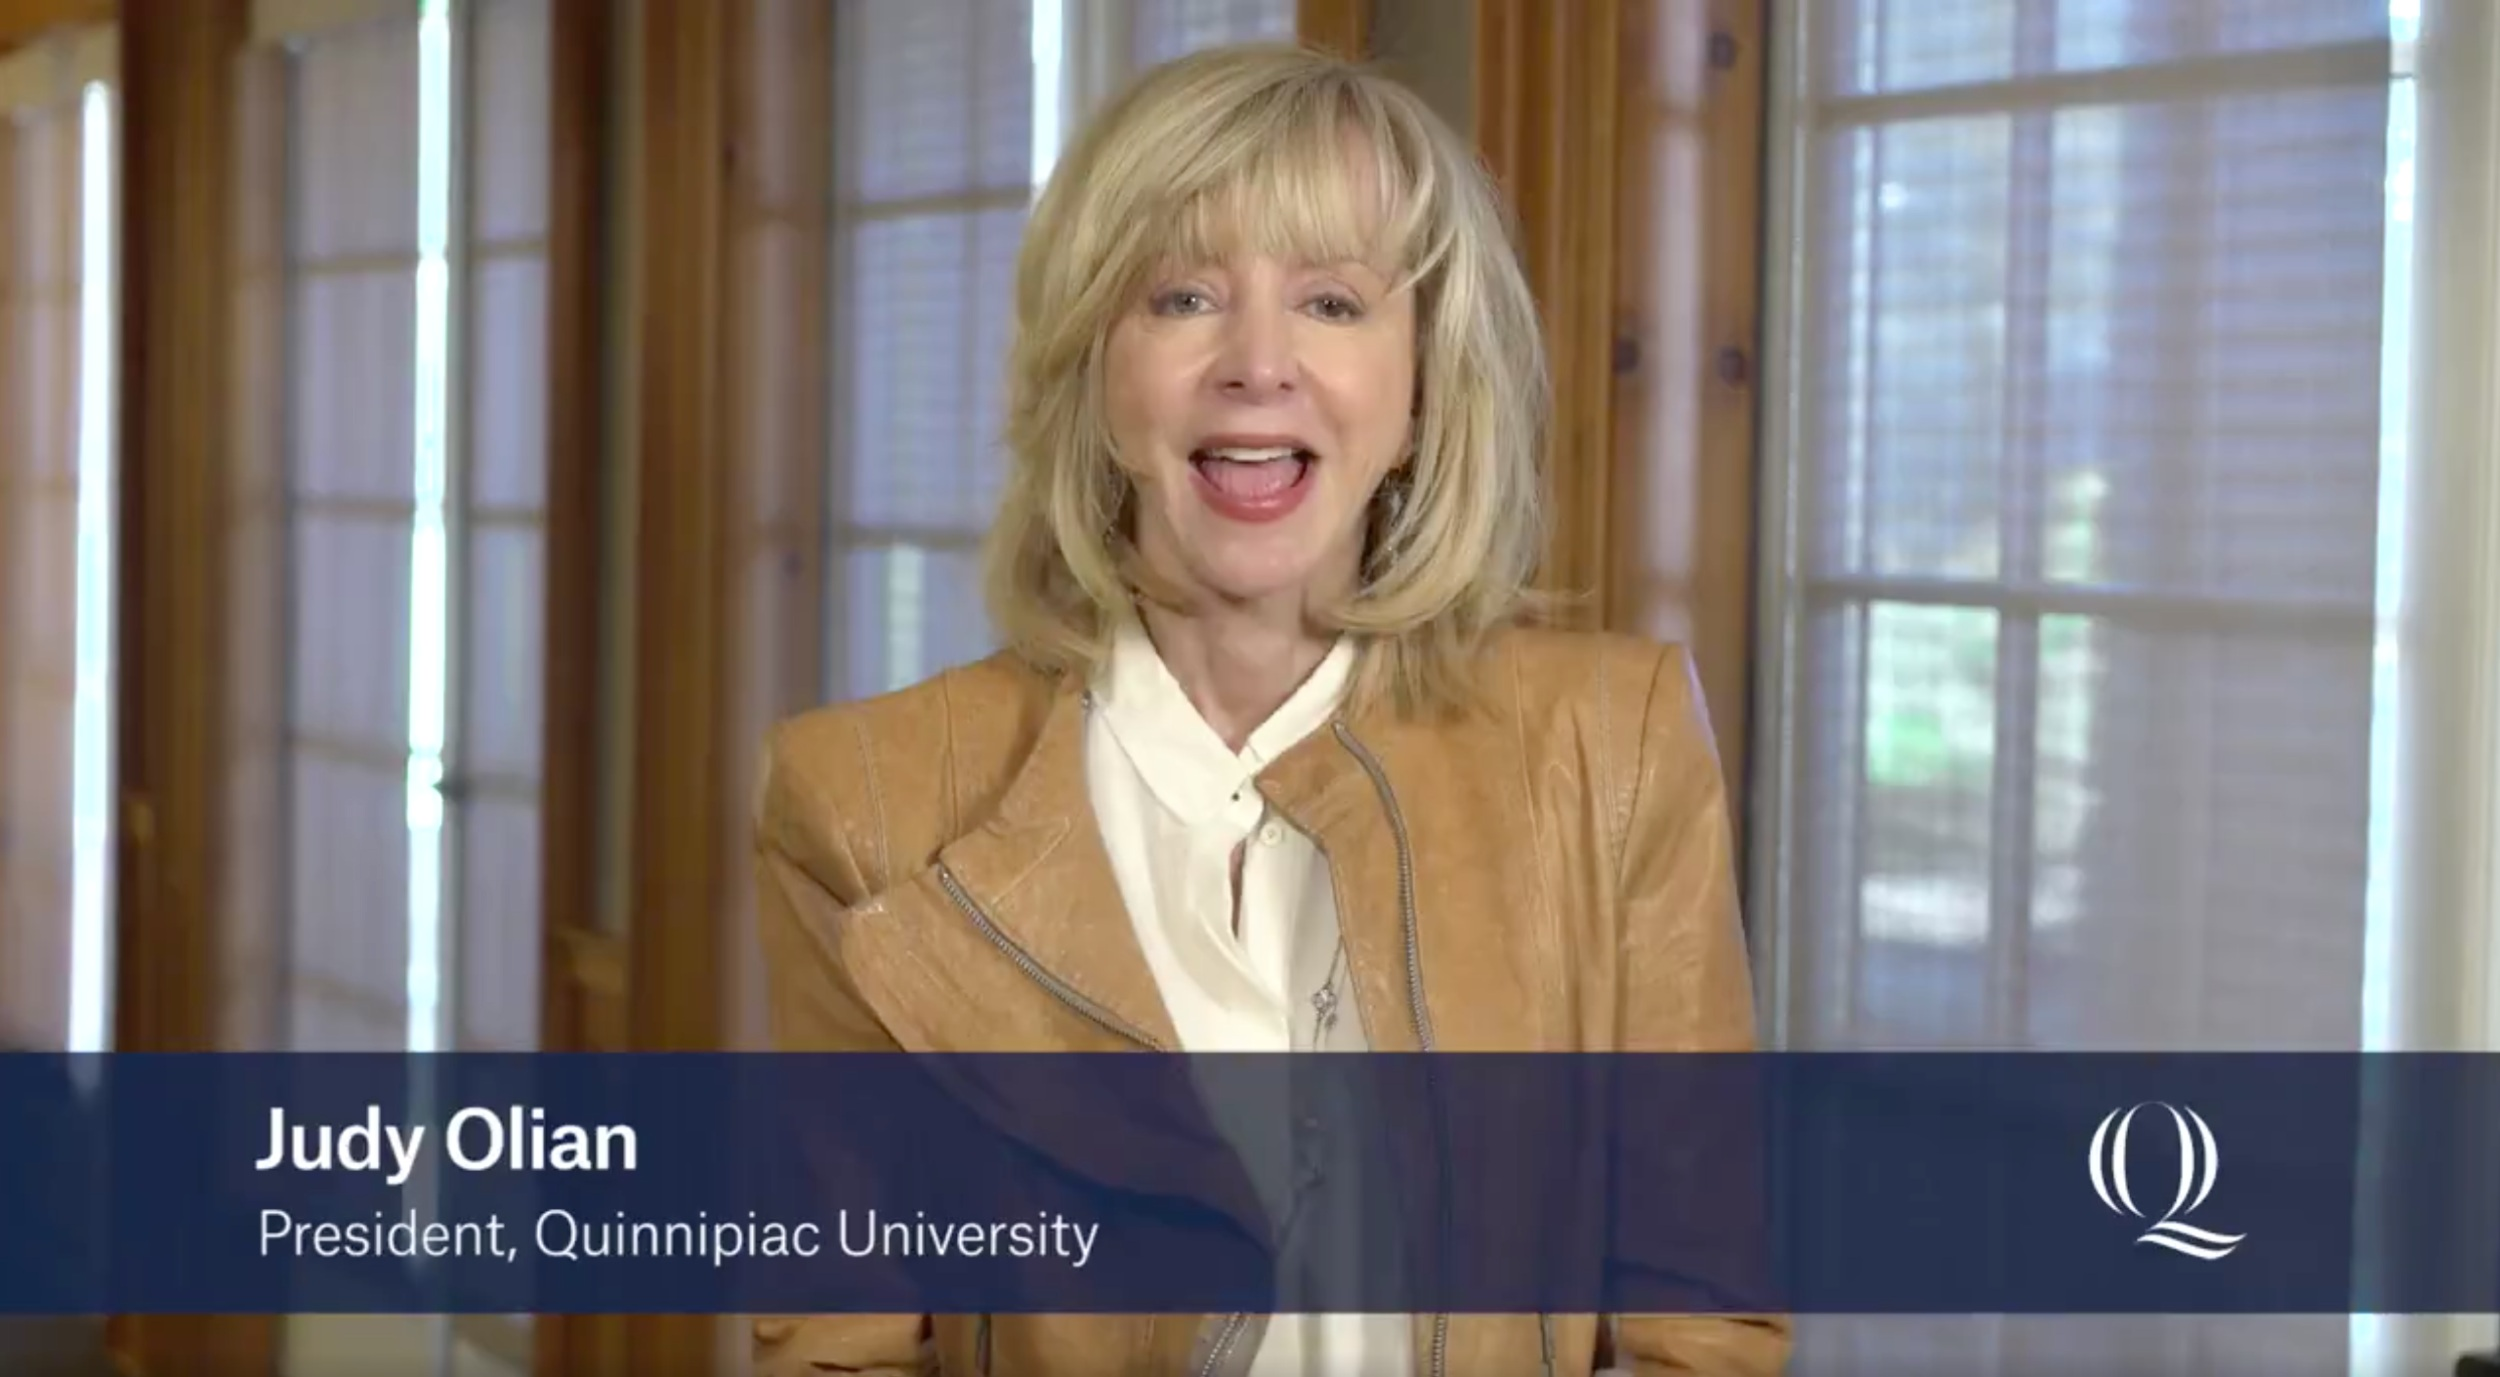 President Judy Olian in a recent video explaining what to look forward to in the coming months and years at Quinnipiac. Screenshot via Quinnipiac University.